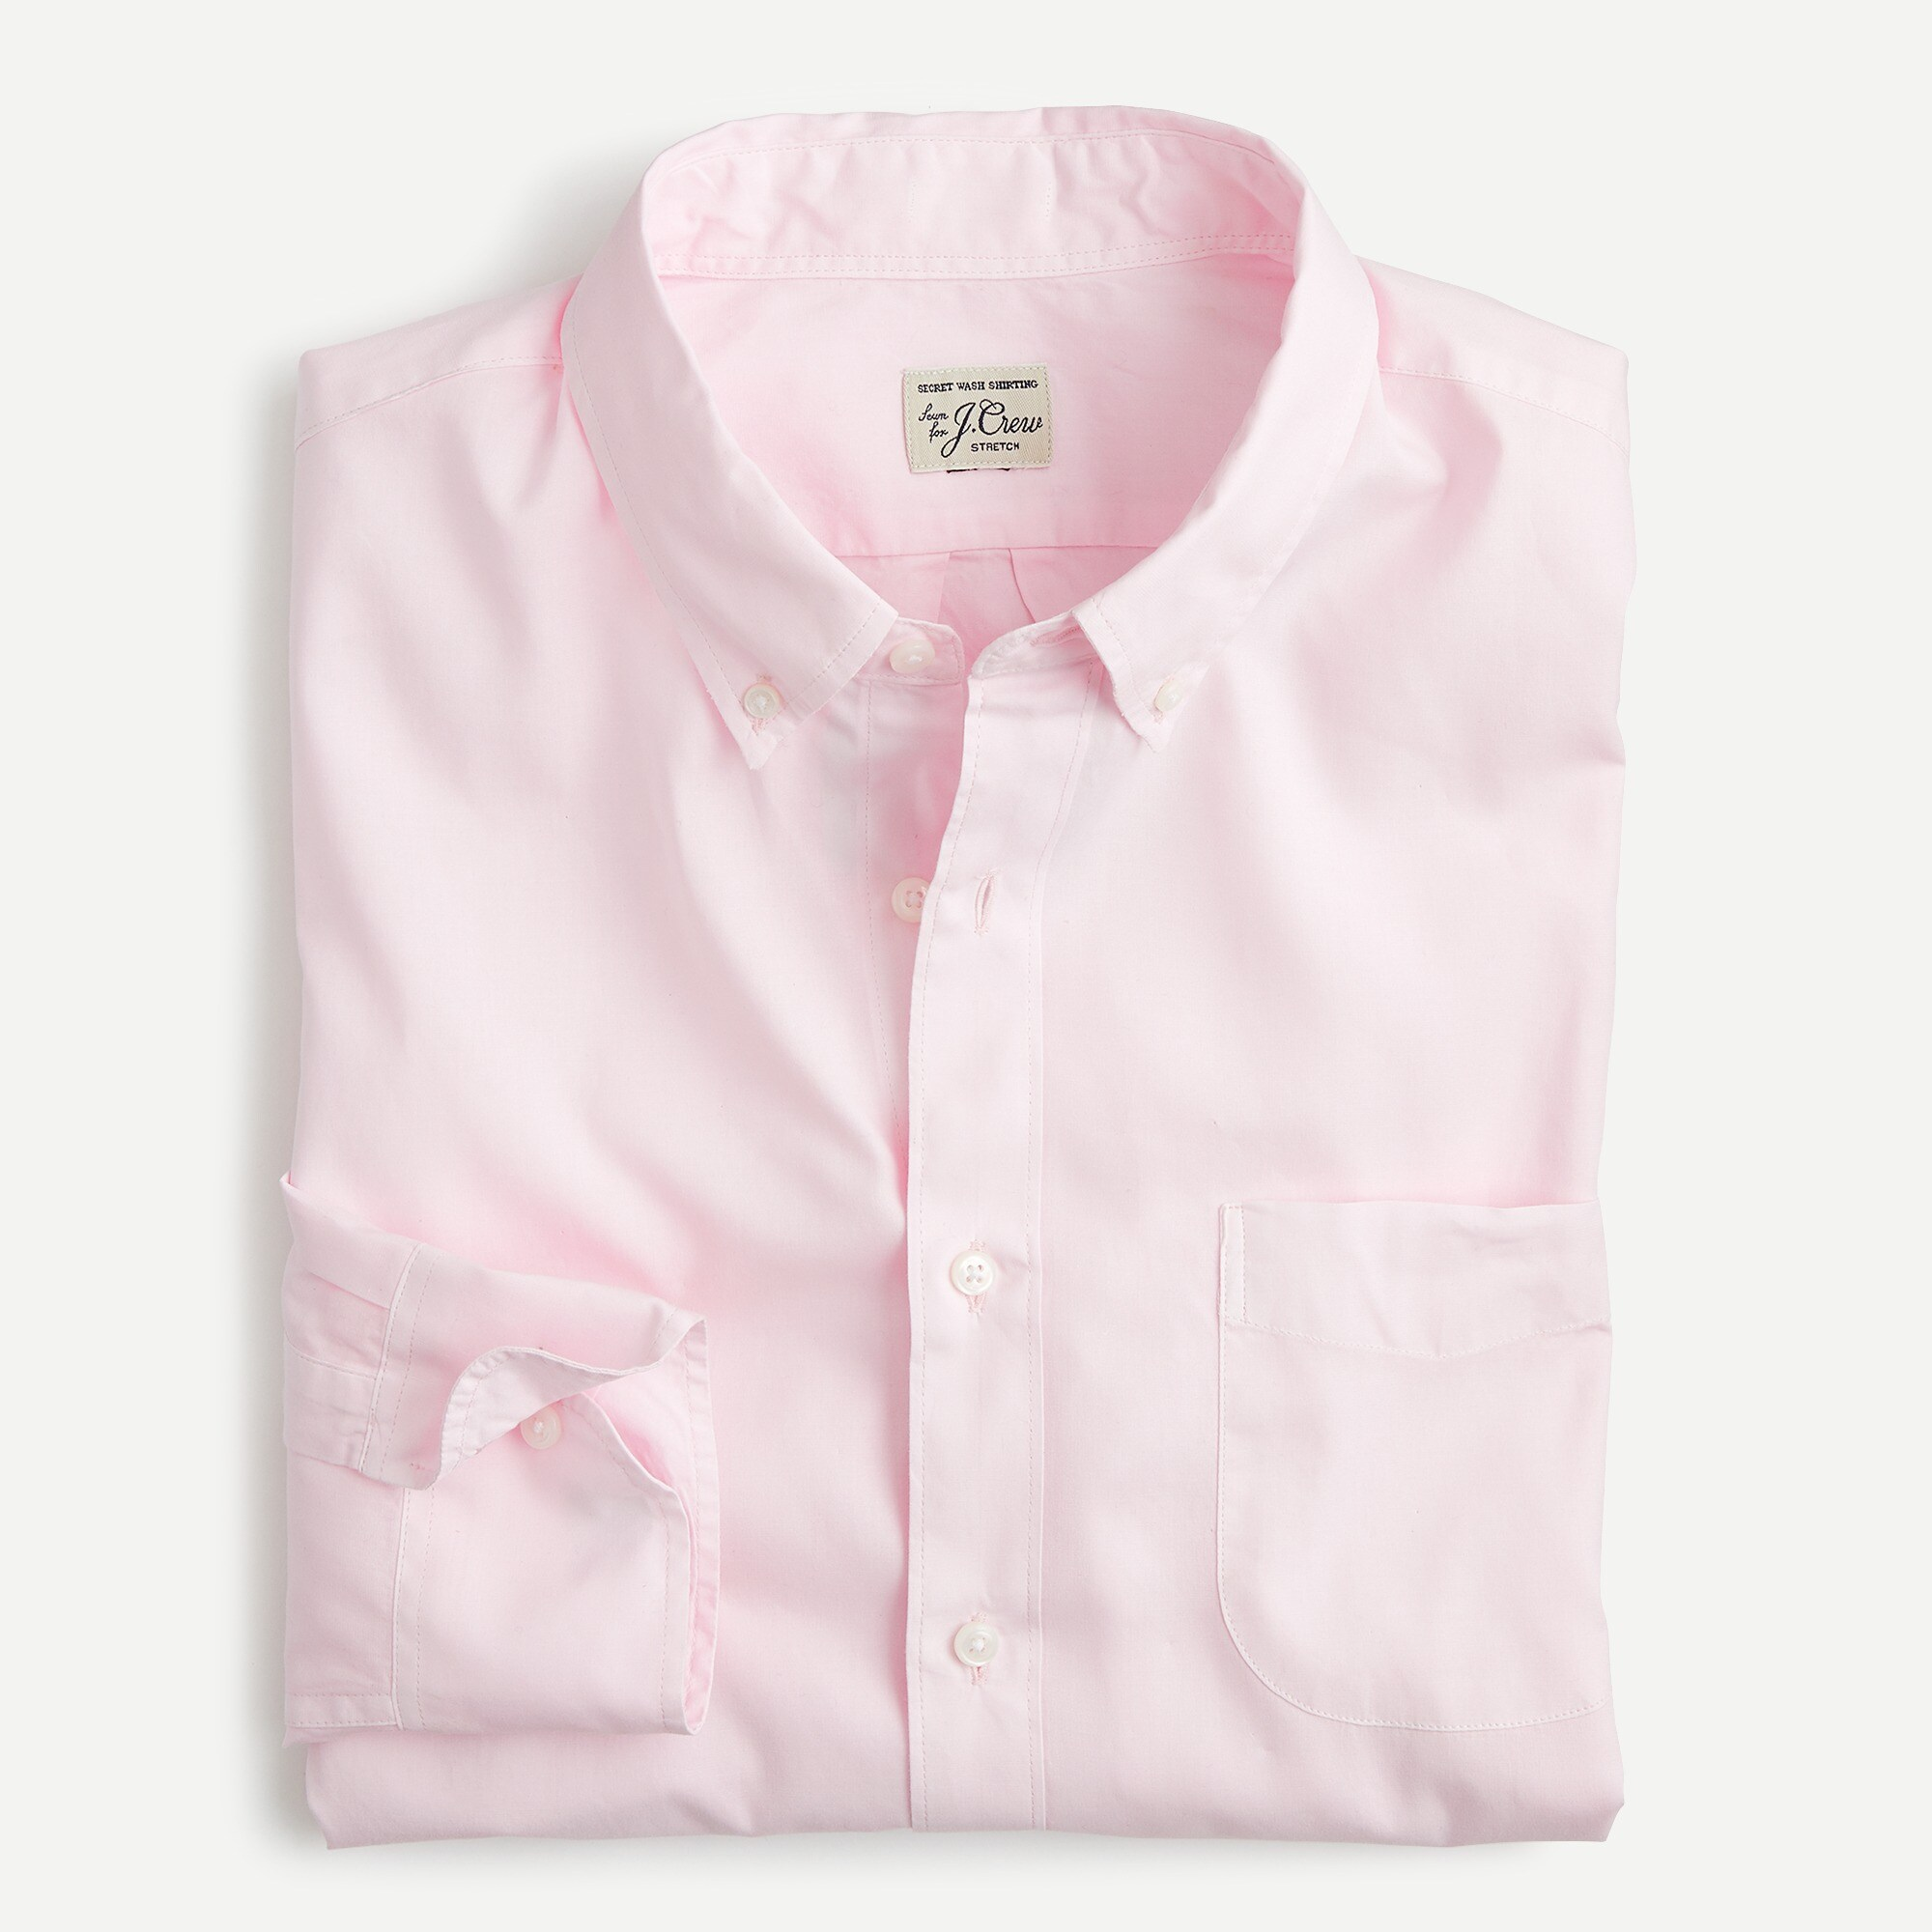 mens Stretch Secret Wash shirt in garment-dyed solid poplin